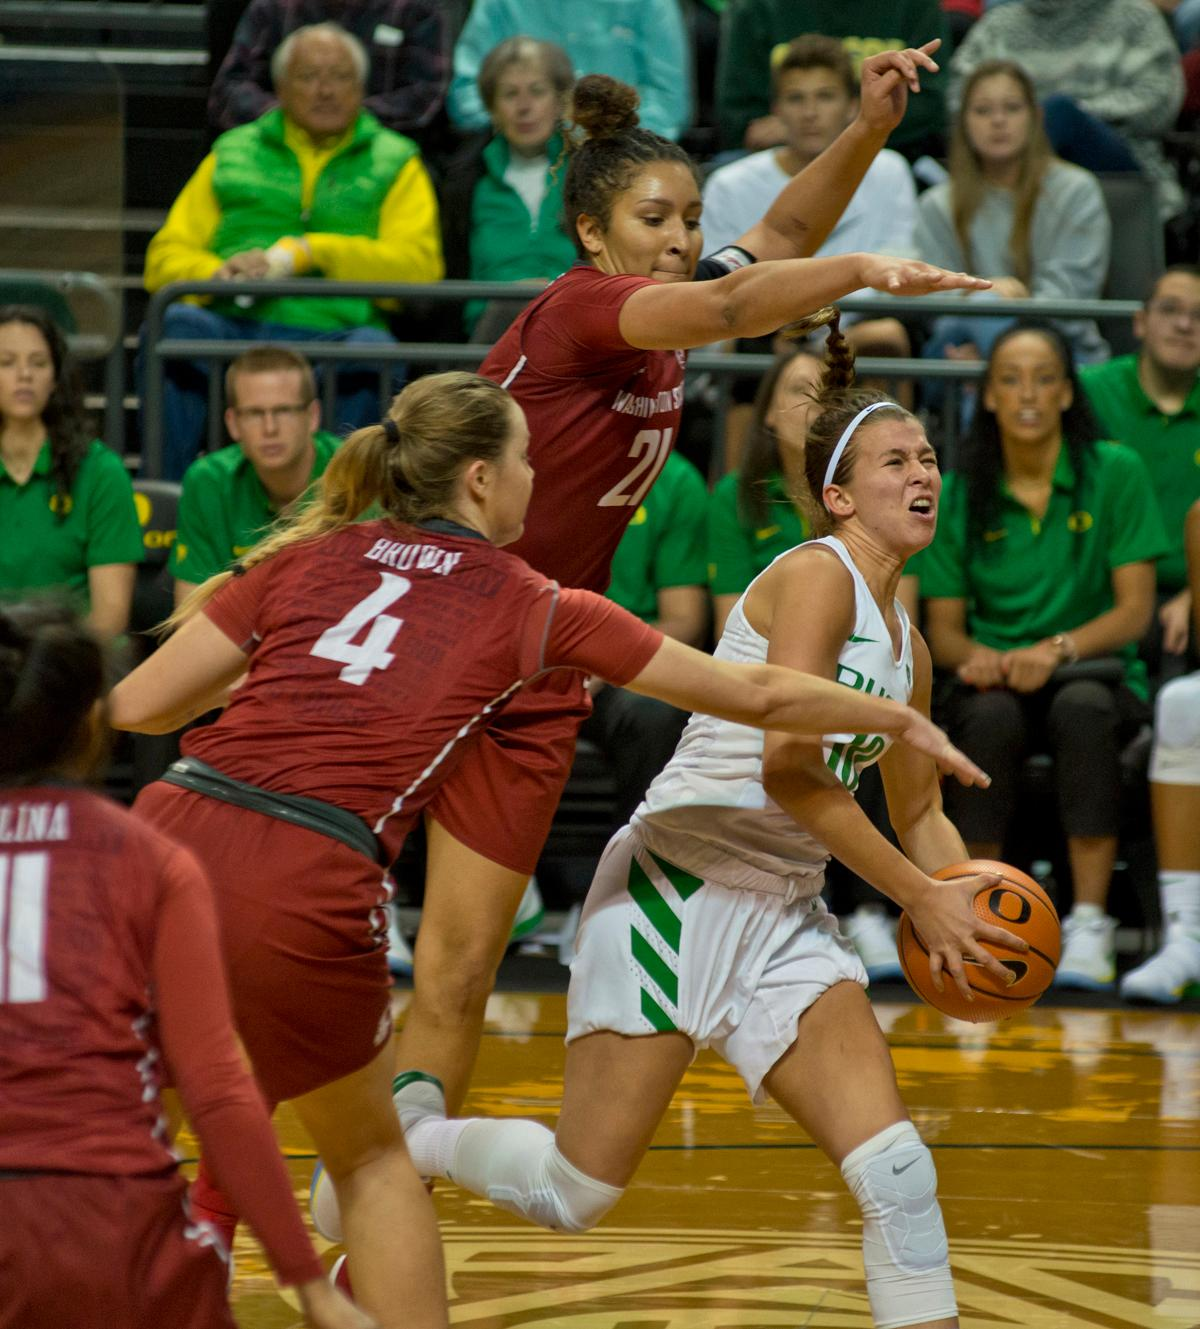 University of Oregon Ducks Lexi Bando (#10) attempts to drive to the basket past the defense of Washington State University Cougars Louise Brown (#4) and Nike McClure (#21). In their first conference basketball game of the season, the Oregon Women Ducks defeated the Washington State University Cougars 89-56 in Matt Knight Arena Saturday afternoon. Oregon's Ruthy Hebard ran up 25 points with 10 rebounds. Sabrina Ionescu shot 25 points with five three-pointers and three rebounds. Lexi Bando added 18 points, with four three-pointers and pulled down three rebounds. Satou Sabally ended the game with 14 points with one three-pointer and two rebounds. The Ducks are now 12-2 overall with 1-0 in conference and the Cougars stand at 7-6 overall and 0-1 in conference play. The Oregon Women Ducks next play the University of Washington Huskies at 1:00 pm on Sunday. Photo by Dan Morrison, Oregon News Lab